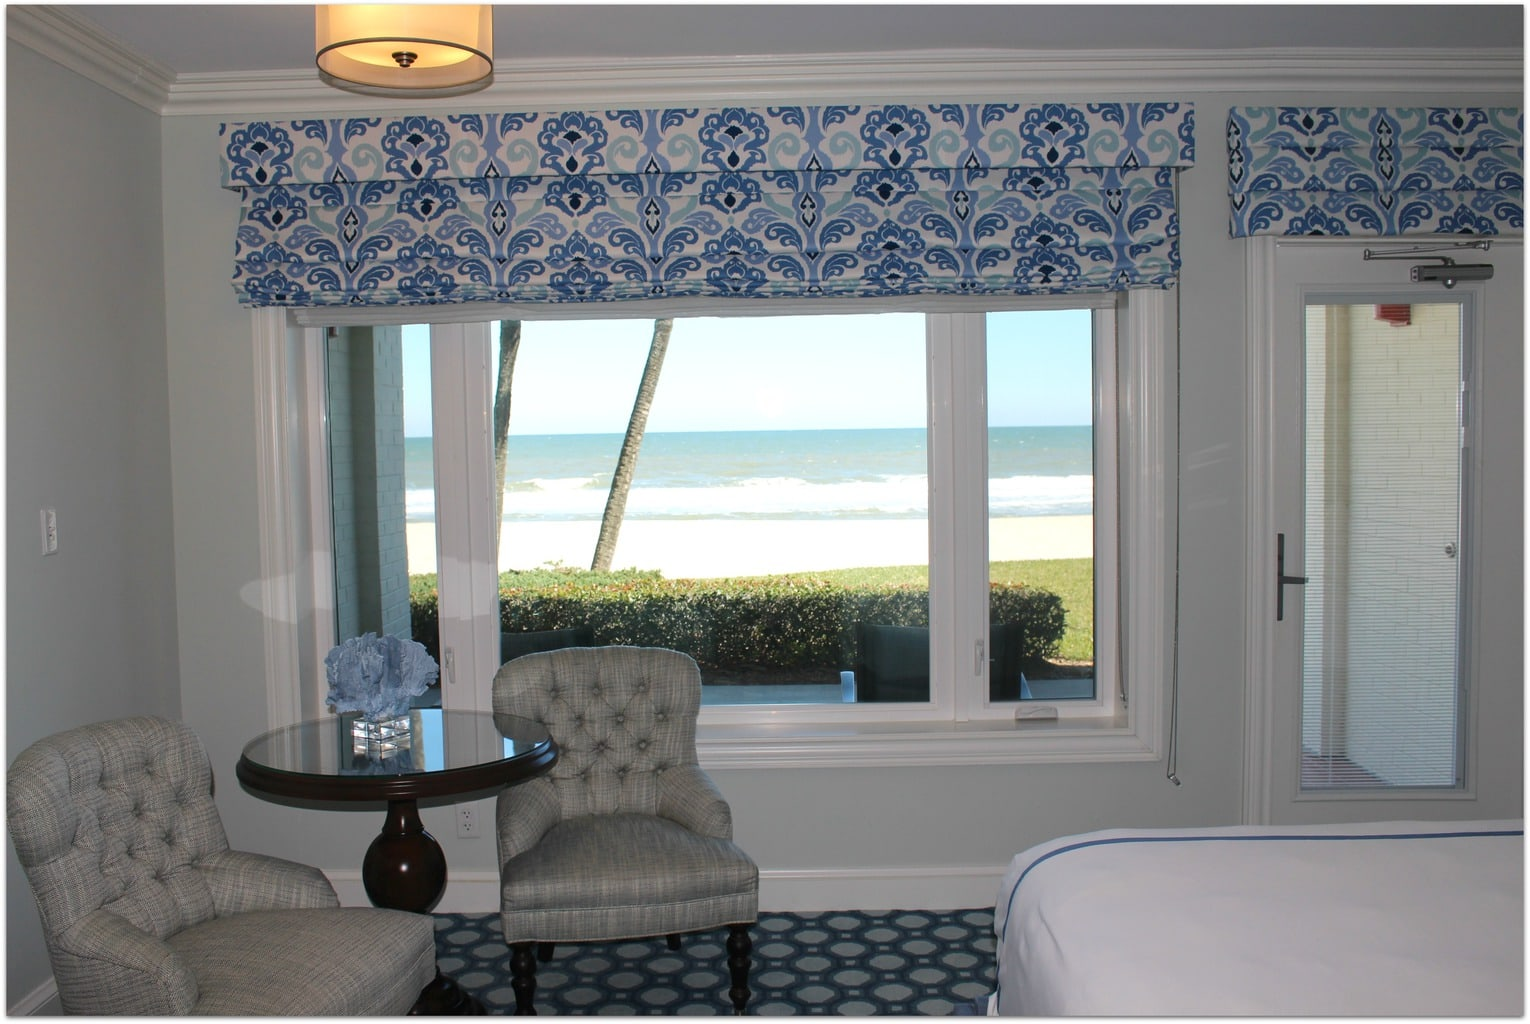 Our room at the Ponte Vedra Inn and spa was spectacular, with comfortable beds, a gorgeous view of the ocean and incredibly soft robes.